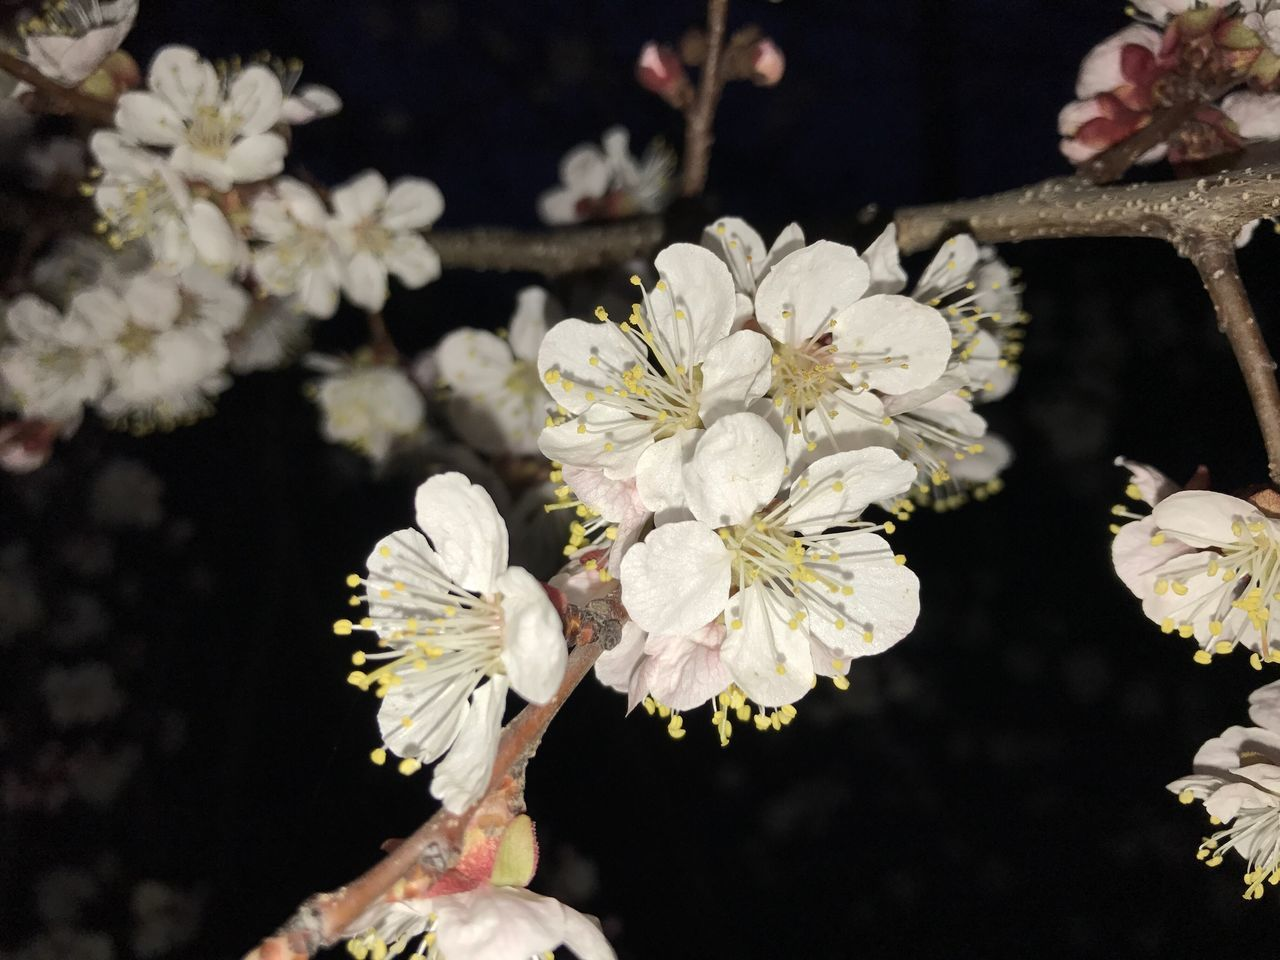 Flower White Color Fragility Nature Beauty In Nature Growth Flower Head Petal Close-up Freshness No People Outdoors Cherry Blossoms Cherry Flowers Cherry Blossom